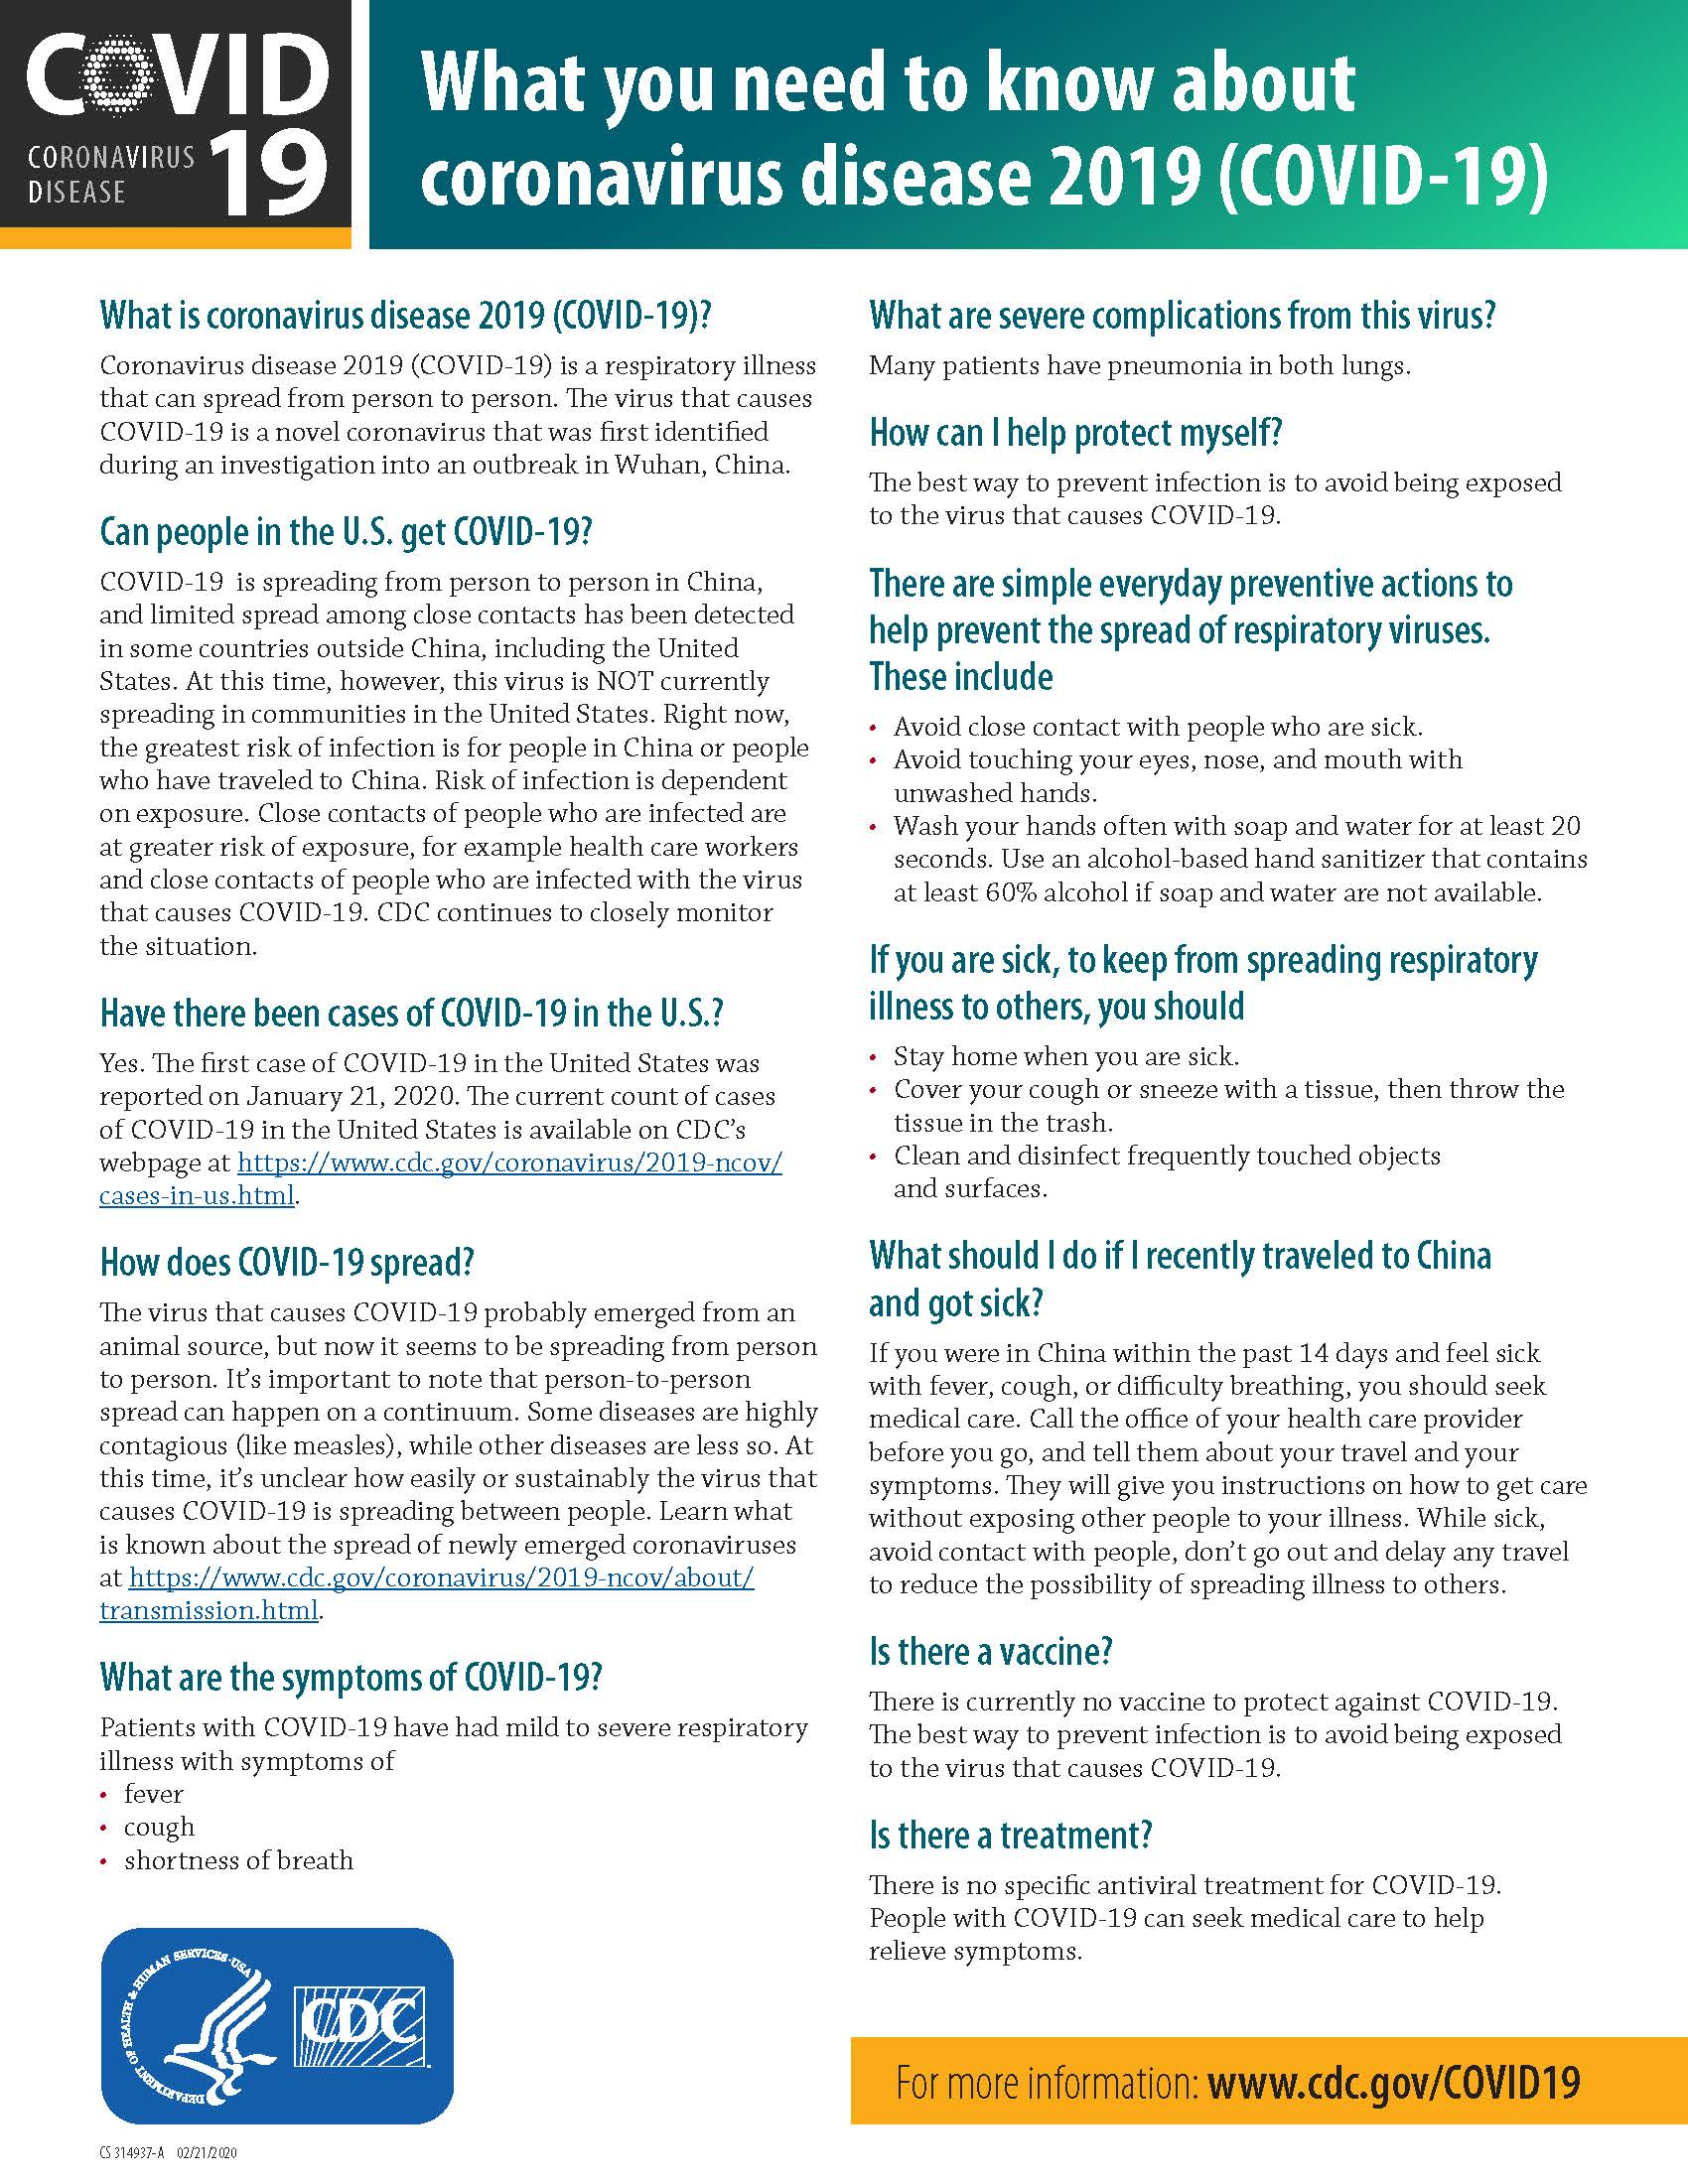 What you need to know about coronavirus disease (1)_Page_1